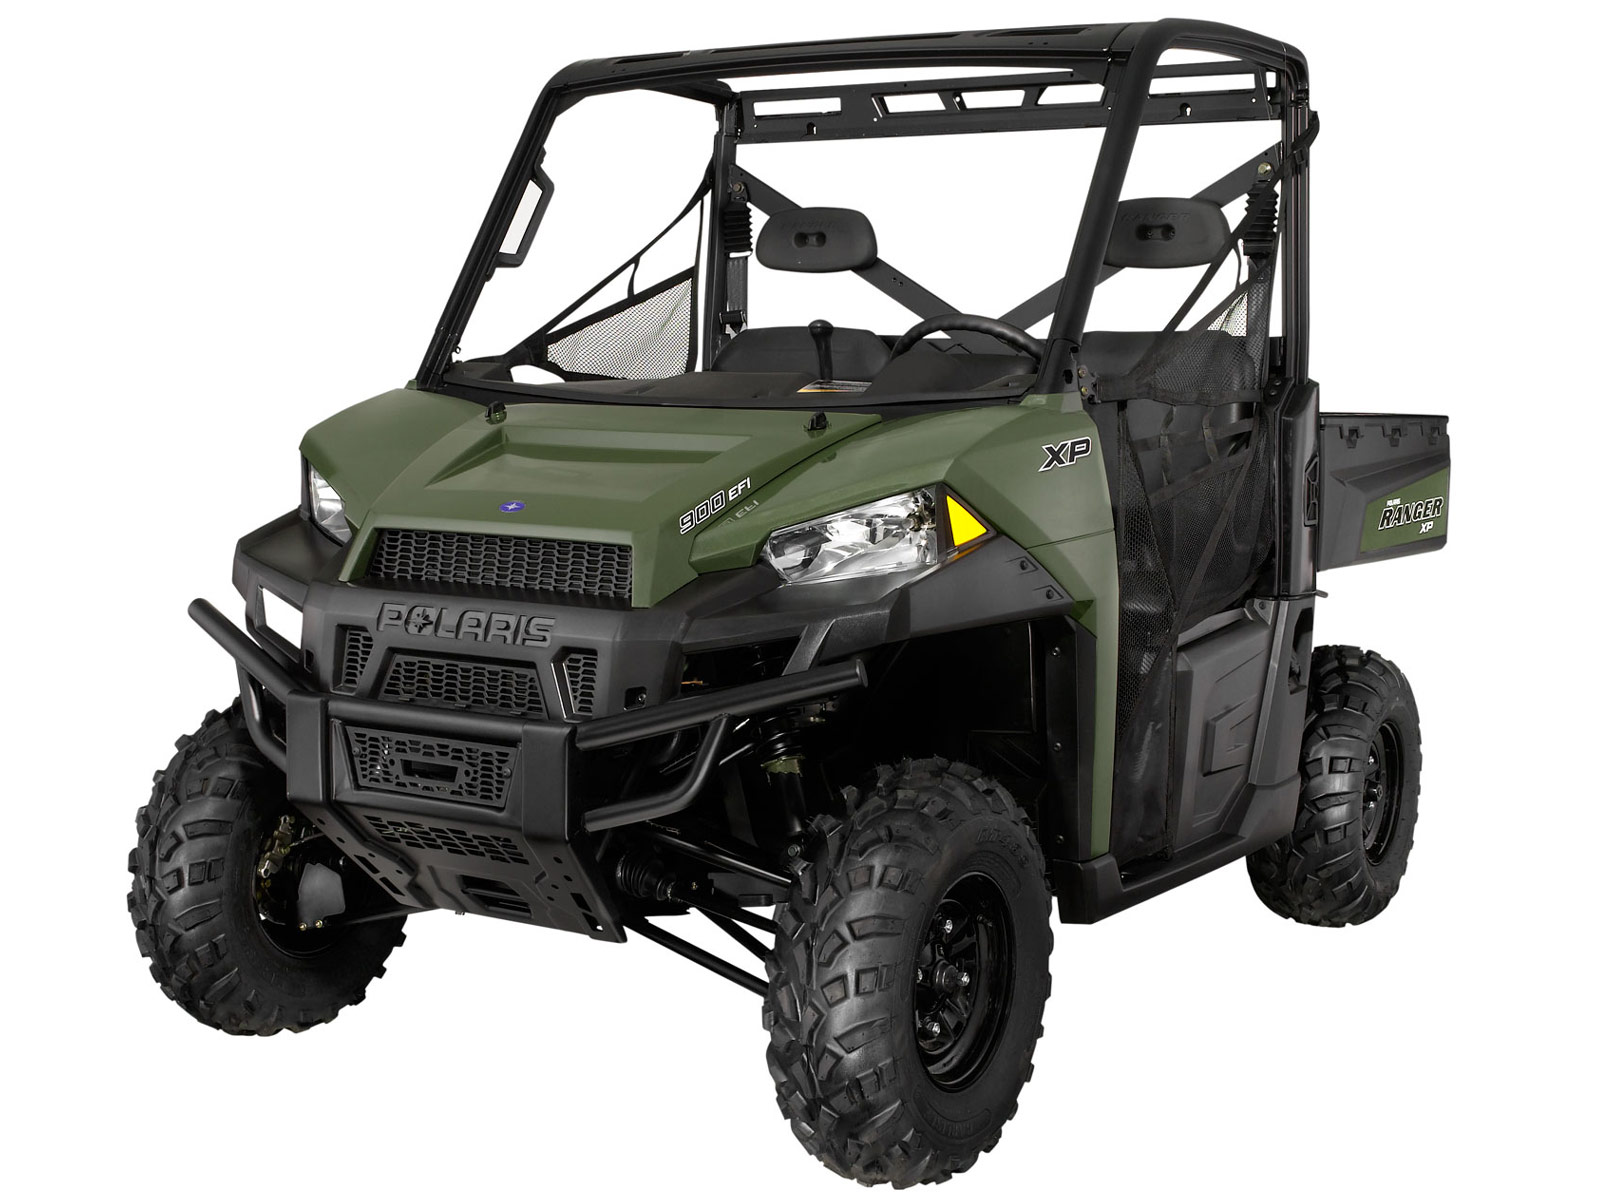 small resolution of 2013 polaris ranger xp900 atv pictures 3